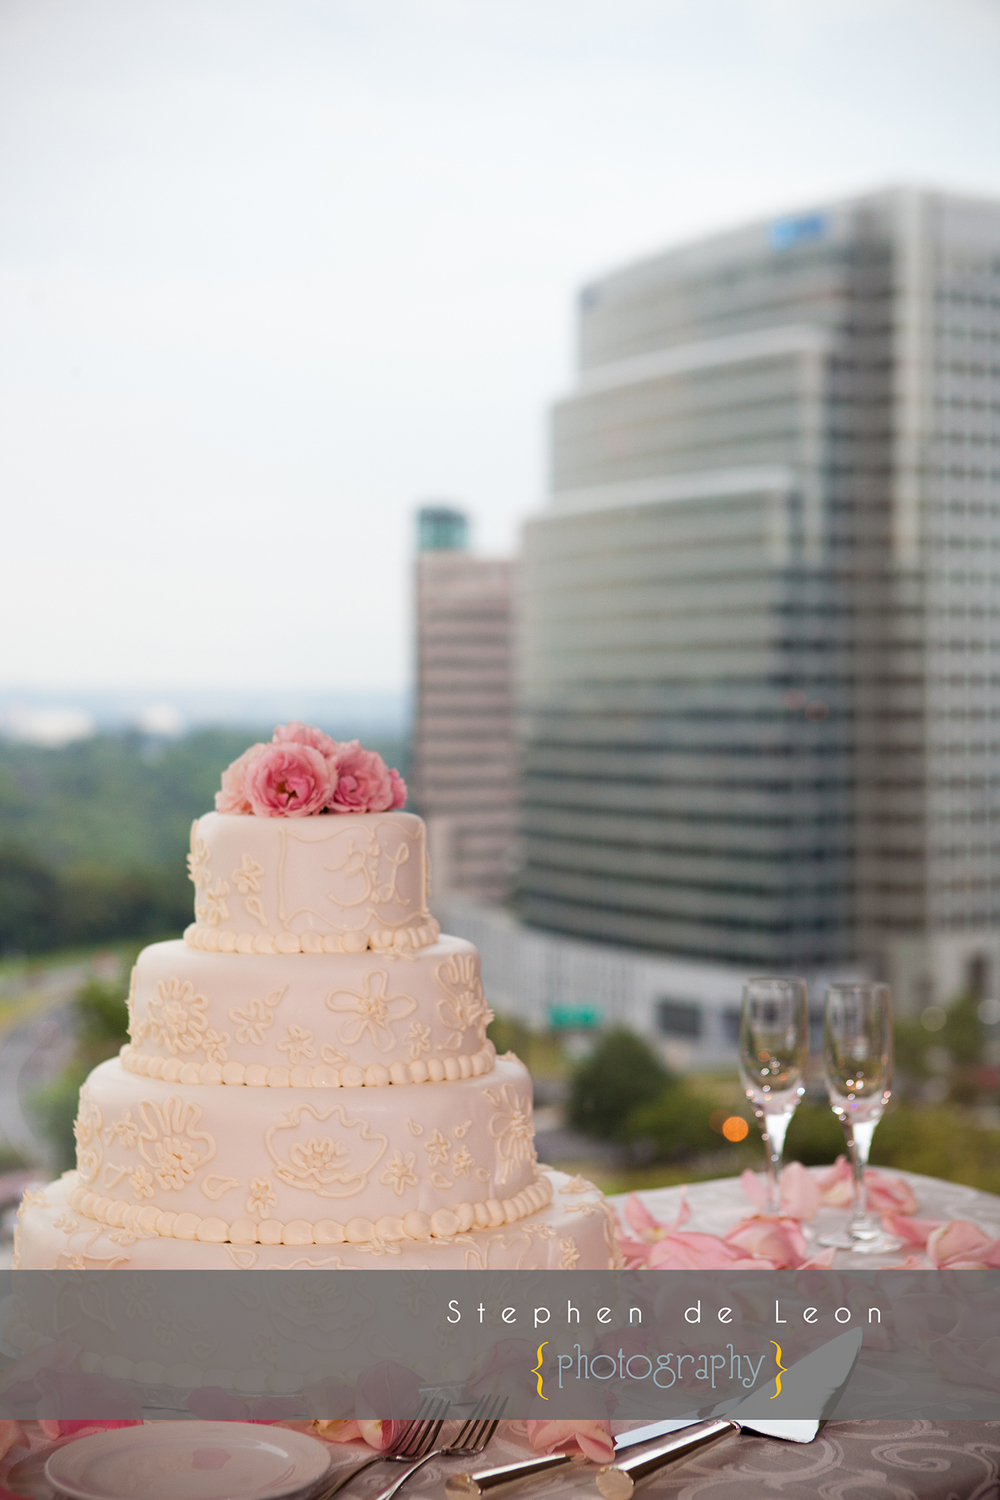 Stephen_de_Leon_Key_Bridge_Marriott_Wedding_Photography025.jpg